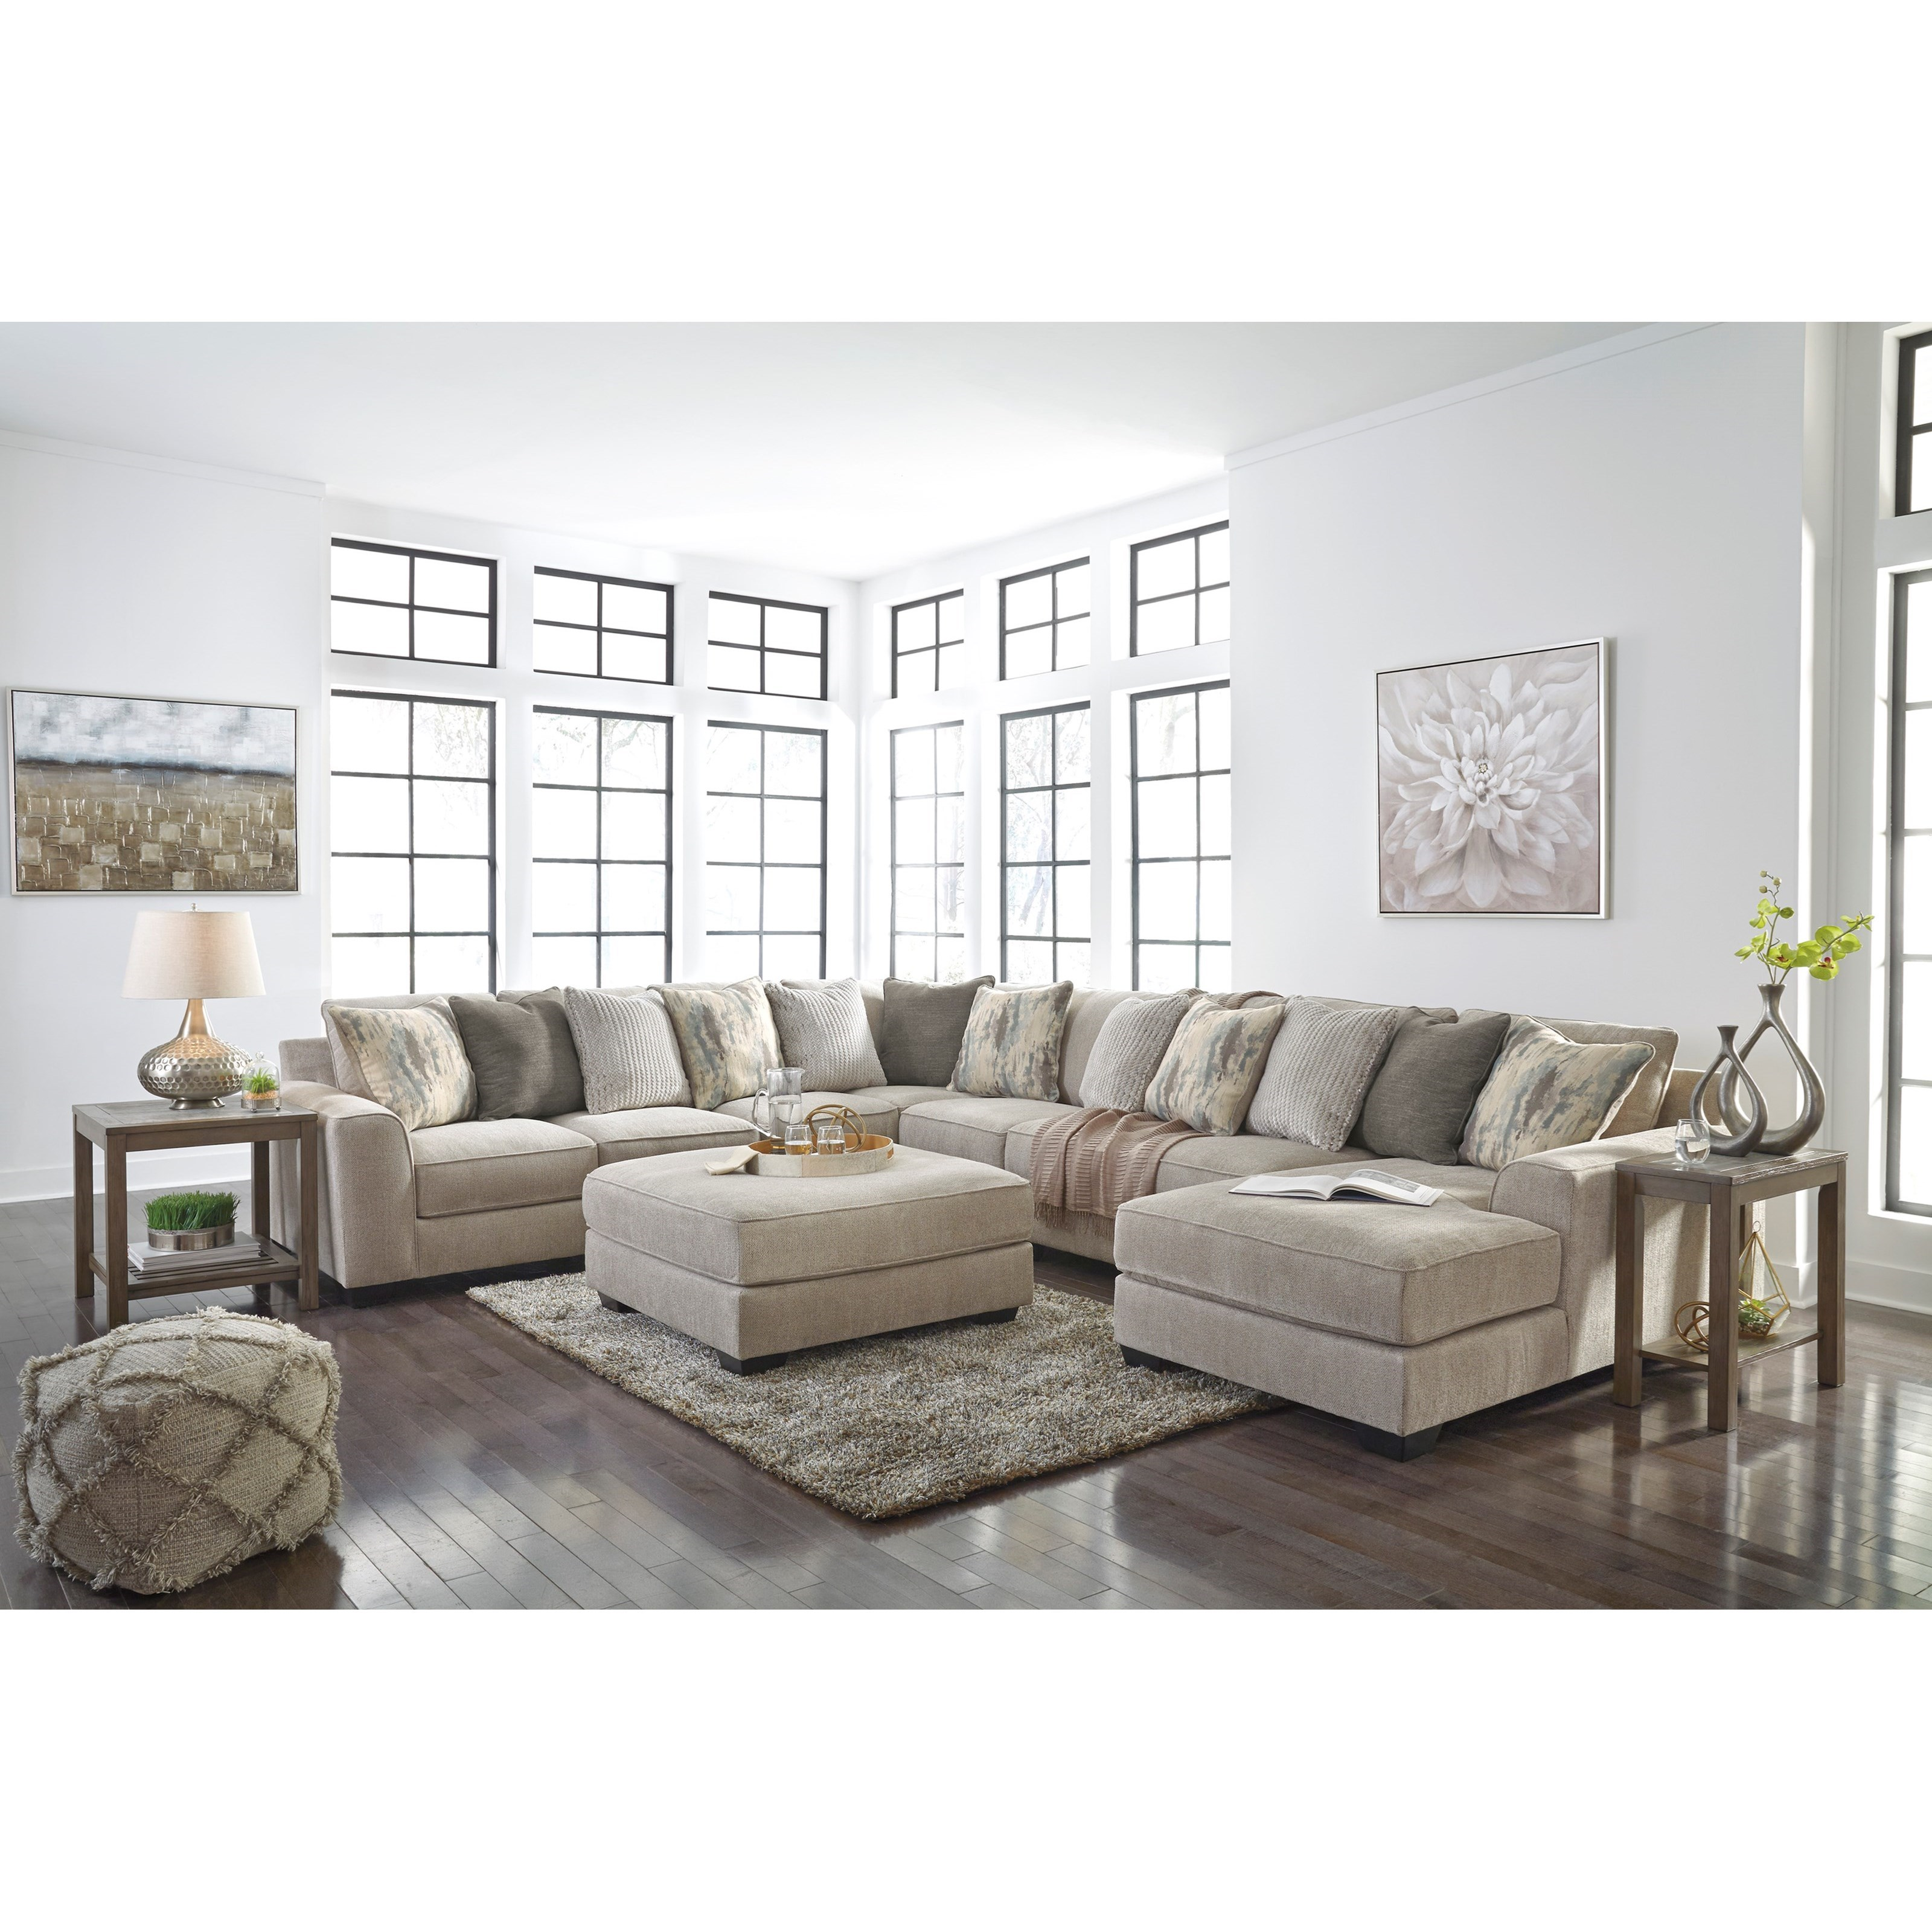 Ardsley Stationary Living Room Group by Benchcraft at Miller Waldrop Furniture and Decor